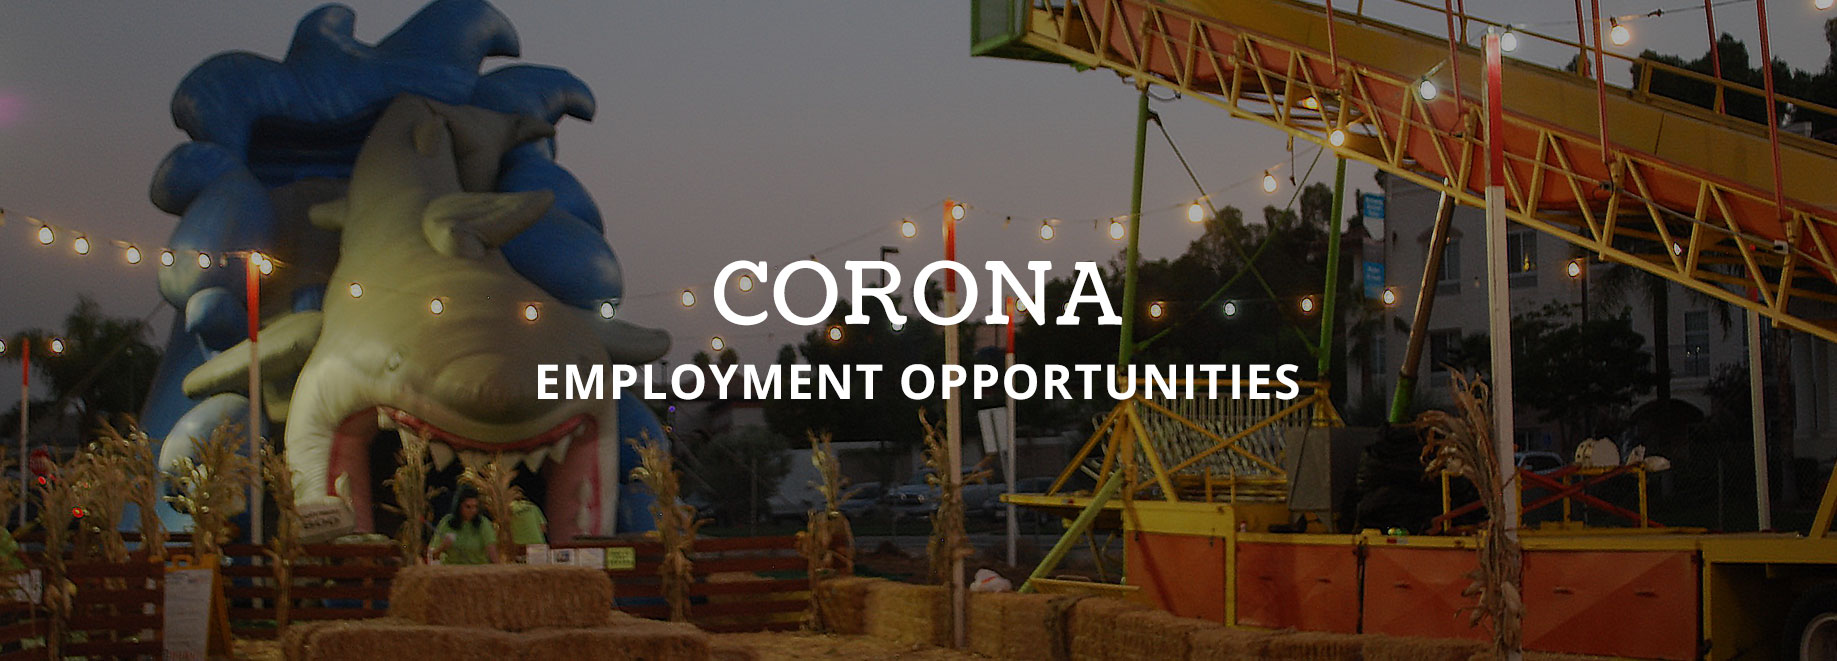 Employment-Opportunities-Corona